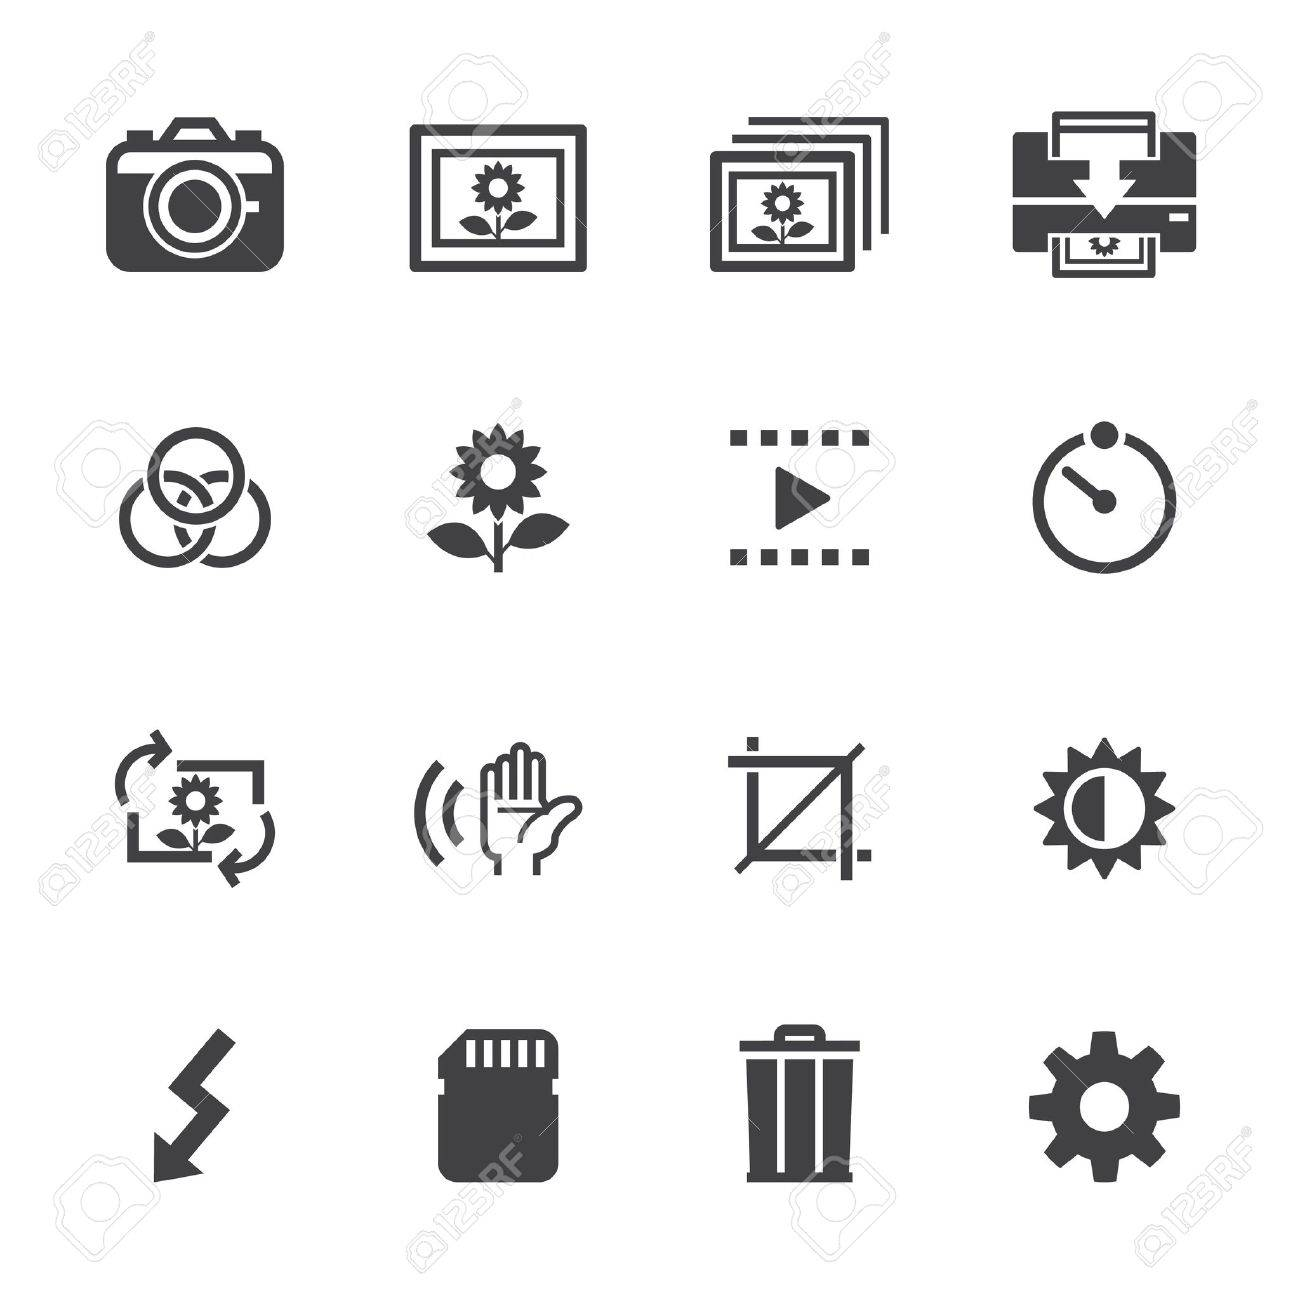 Photography icons and Camera Function Icons with White Background Stock Vector - 20232751